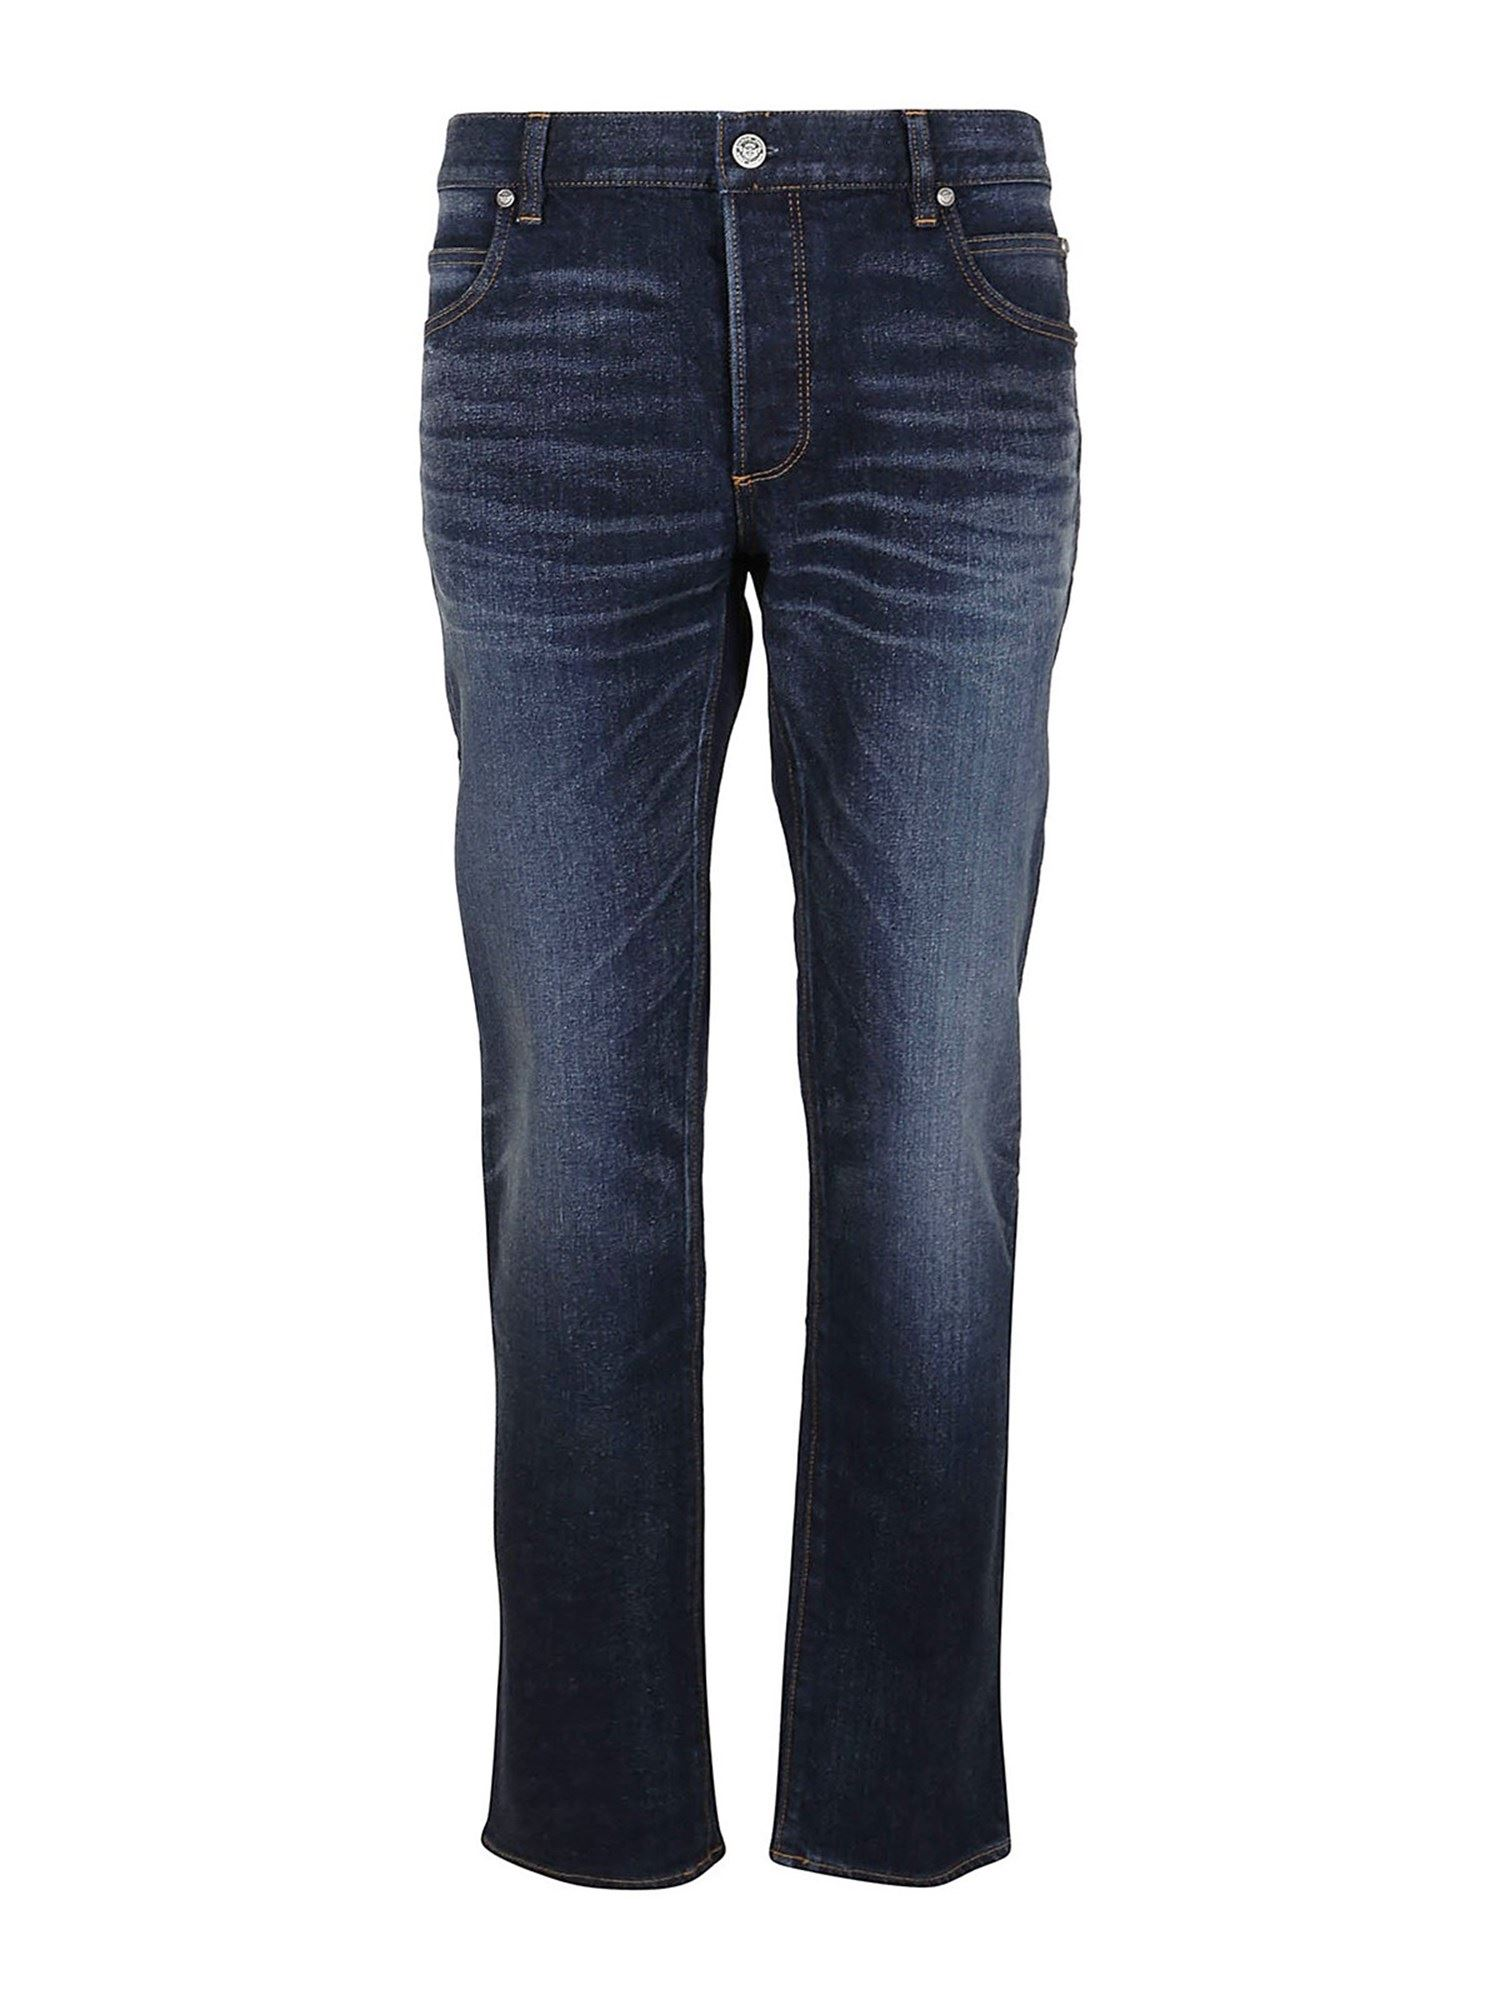 BALMAIN B EMBROIDERY JEANS IN BLUE